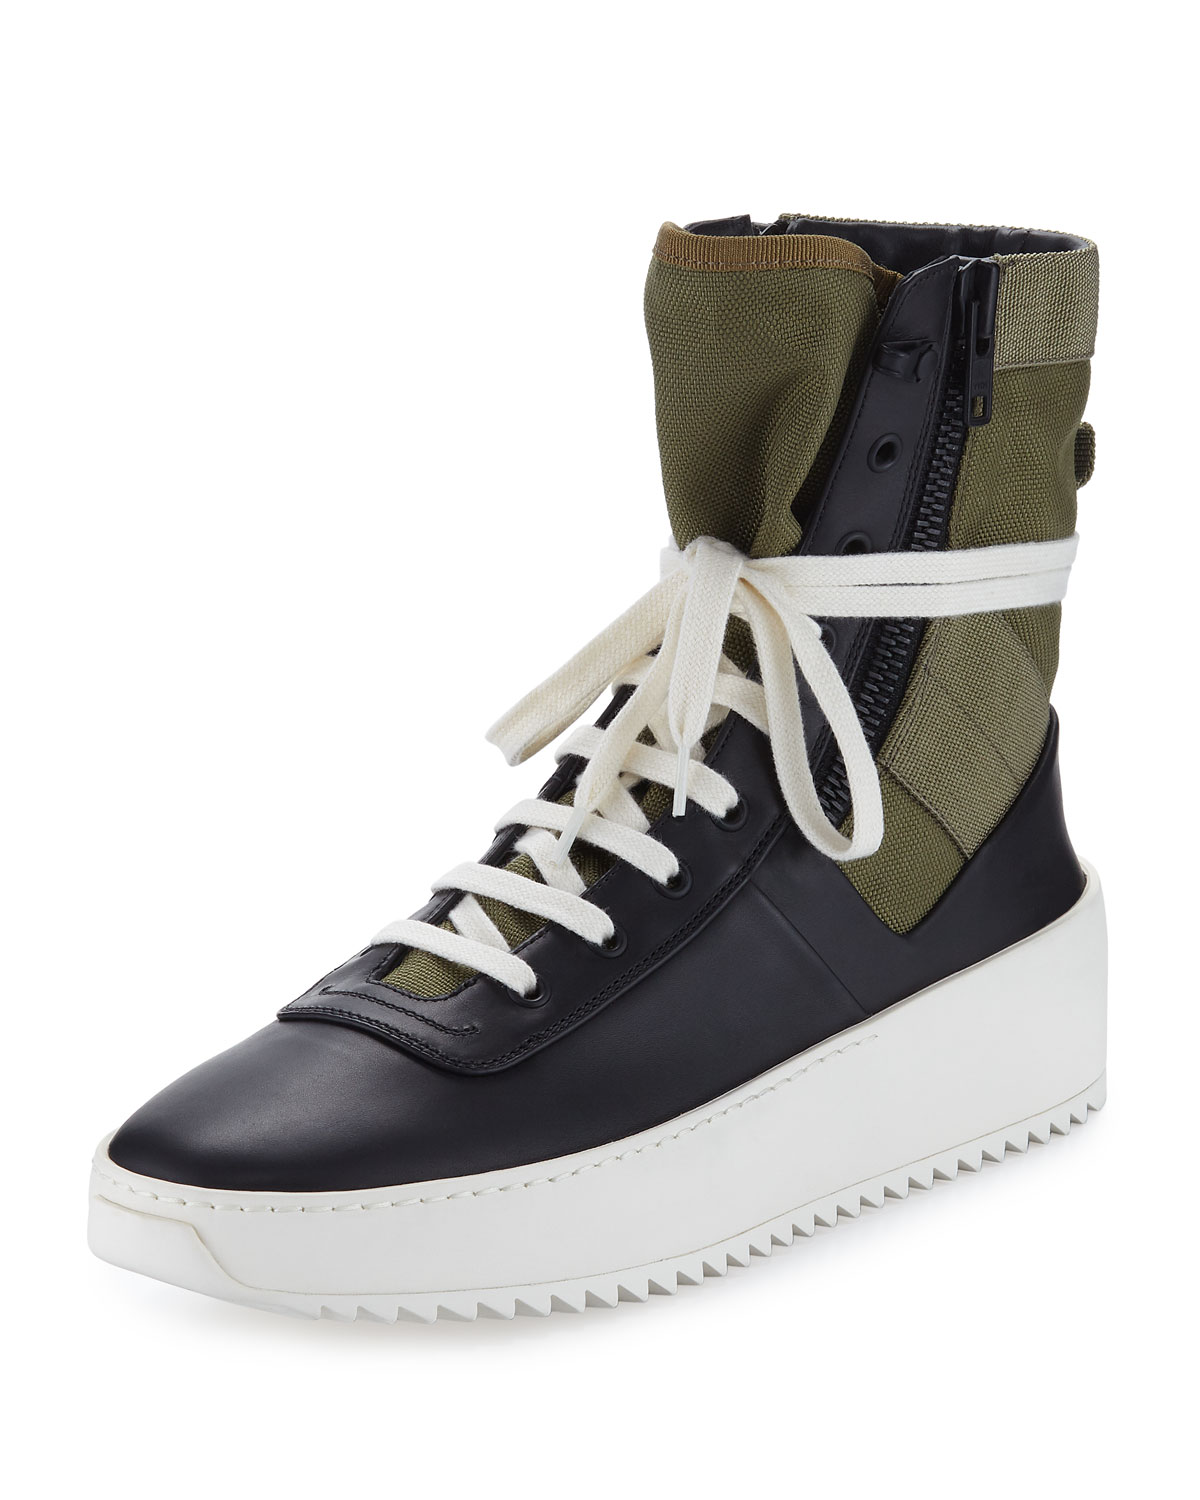 0fb91f3b1 Fear of God Men's Jungle High-Top Leather Sneakers with Canvas Insets